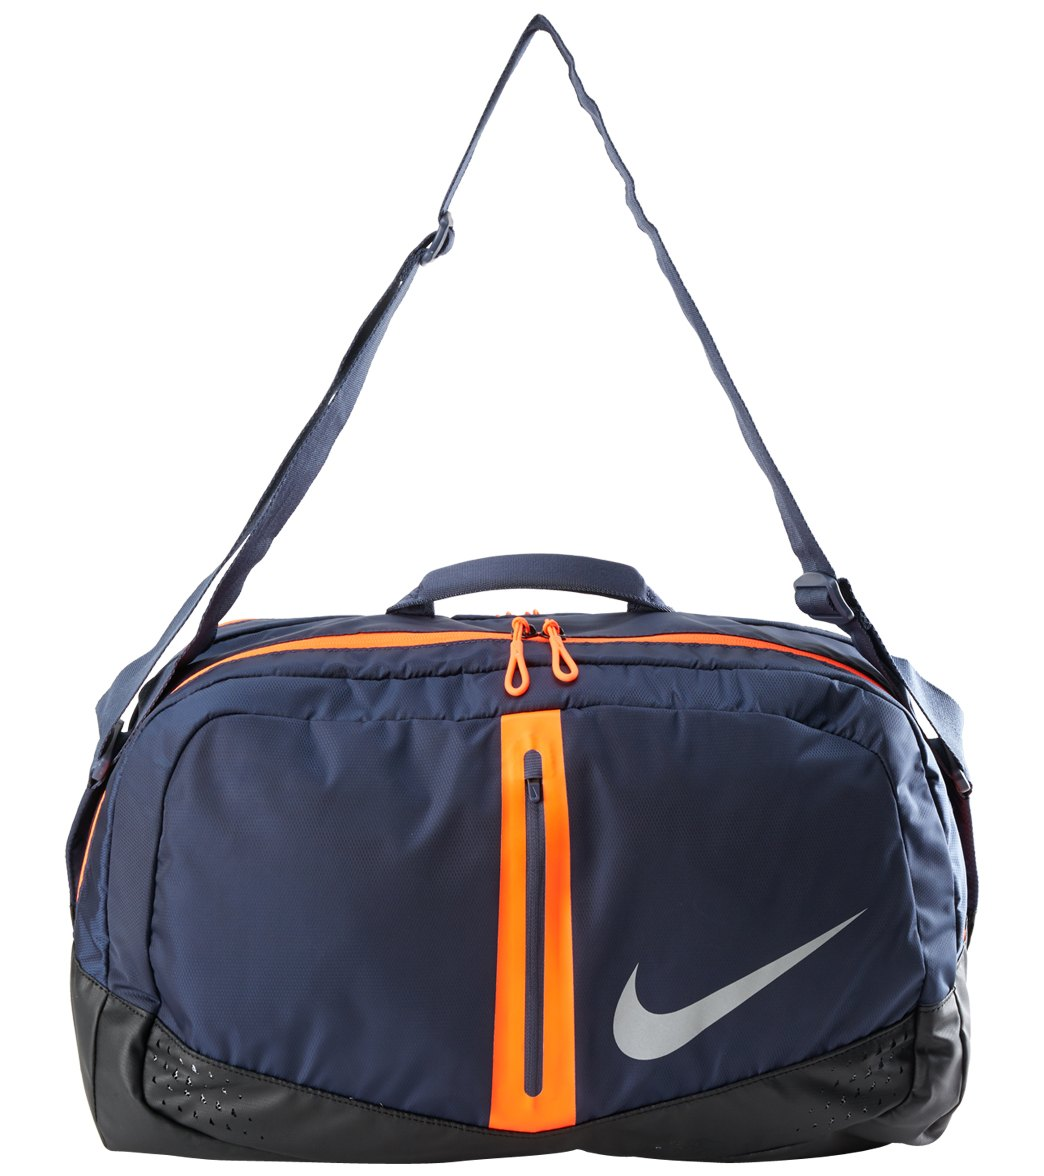 37f76416198024 Nike Run Duffle Bag at SwimOutlet.com - Free Shipping